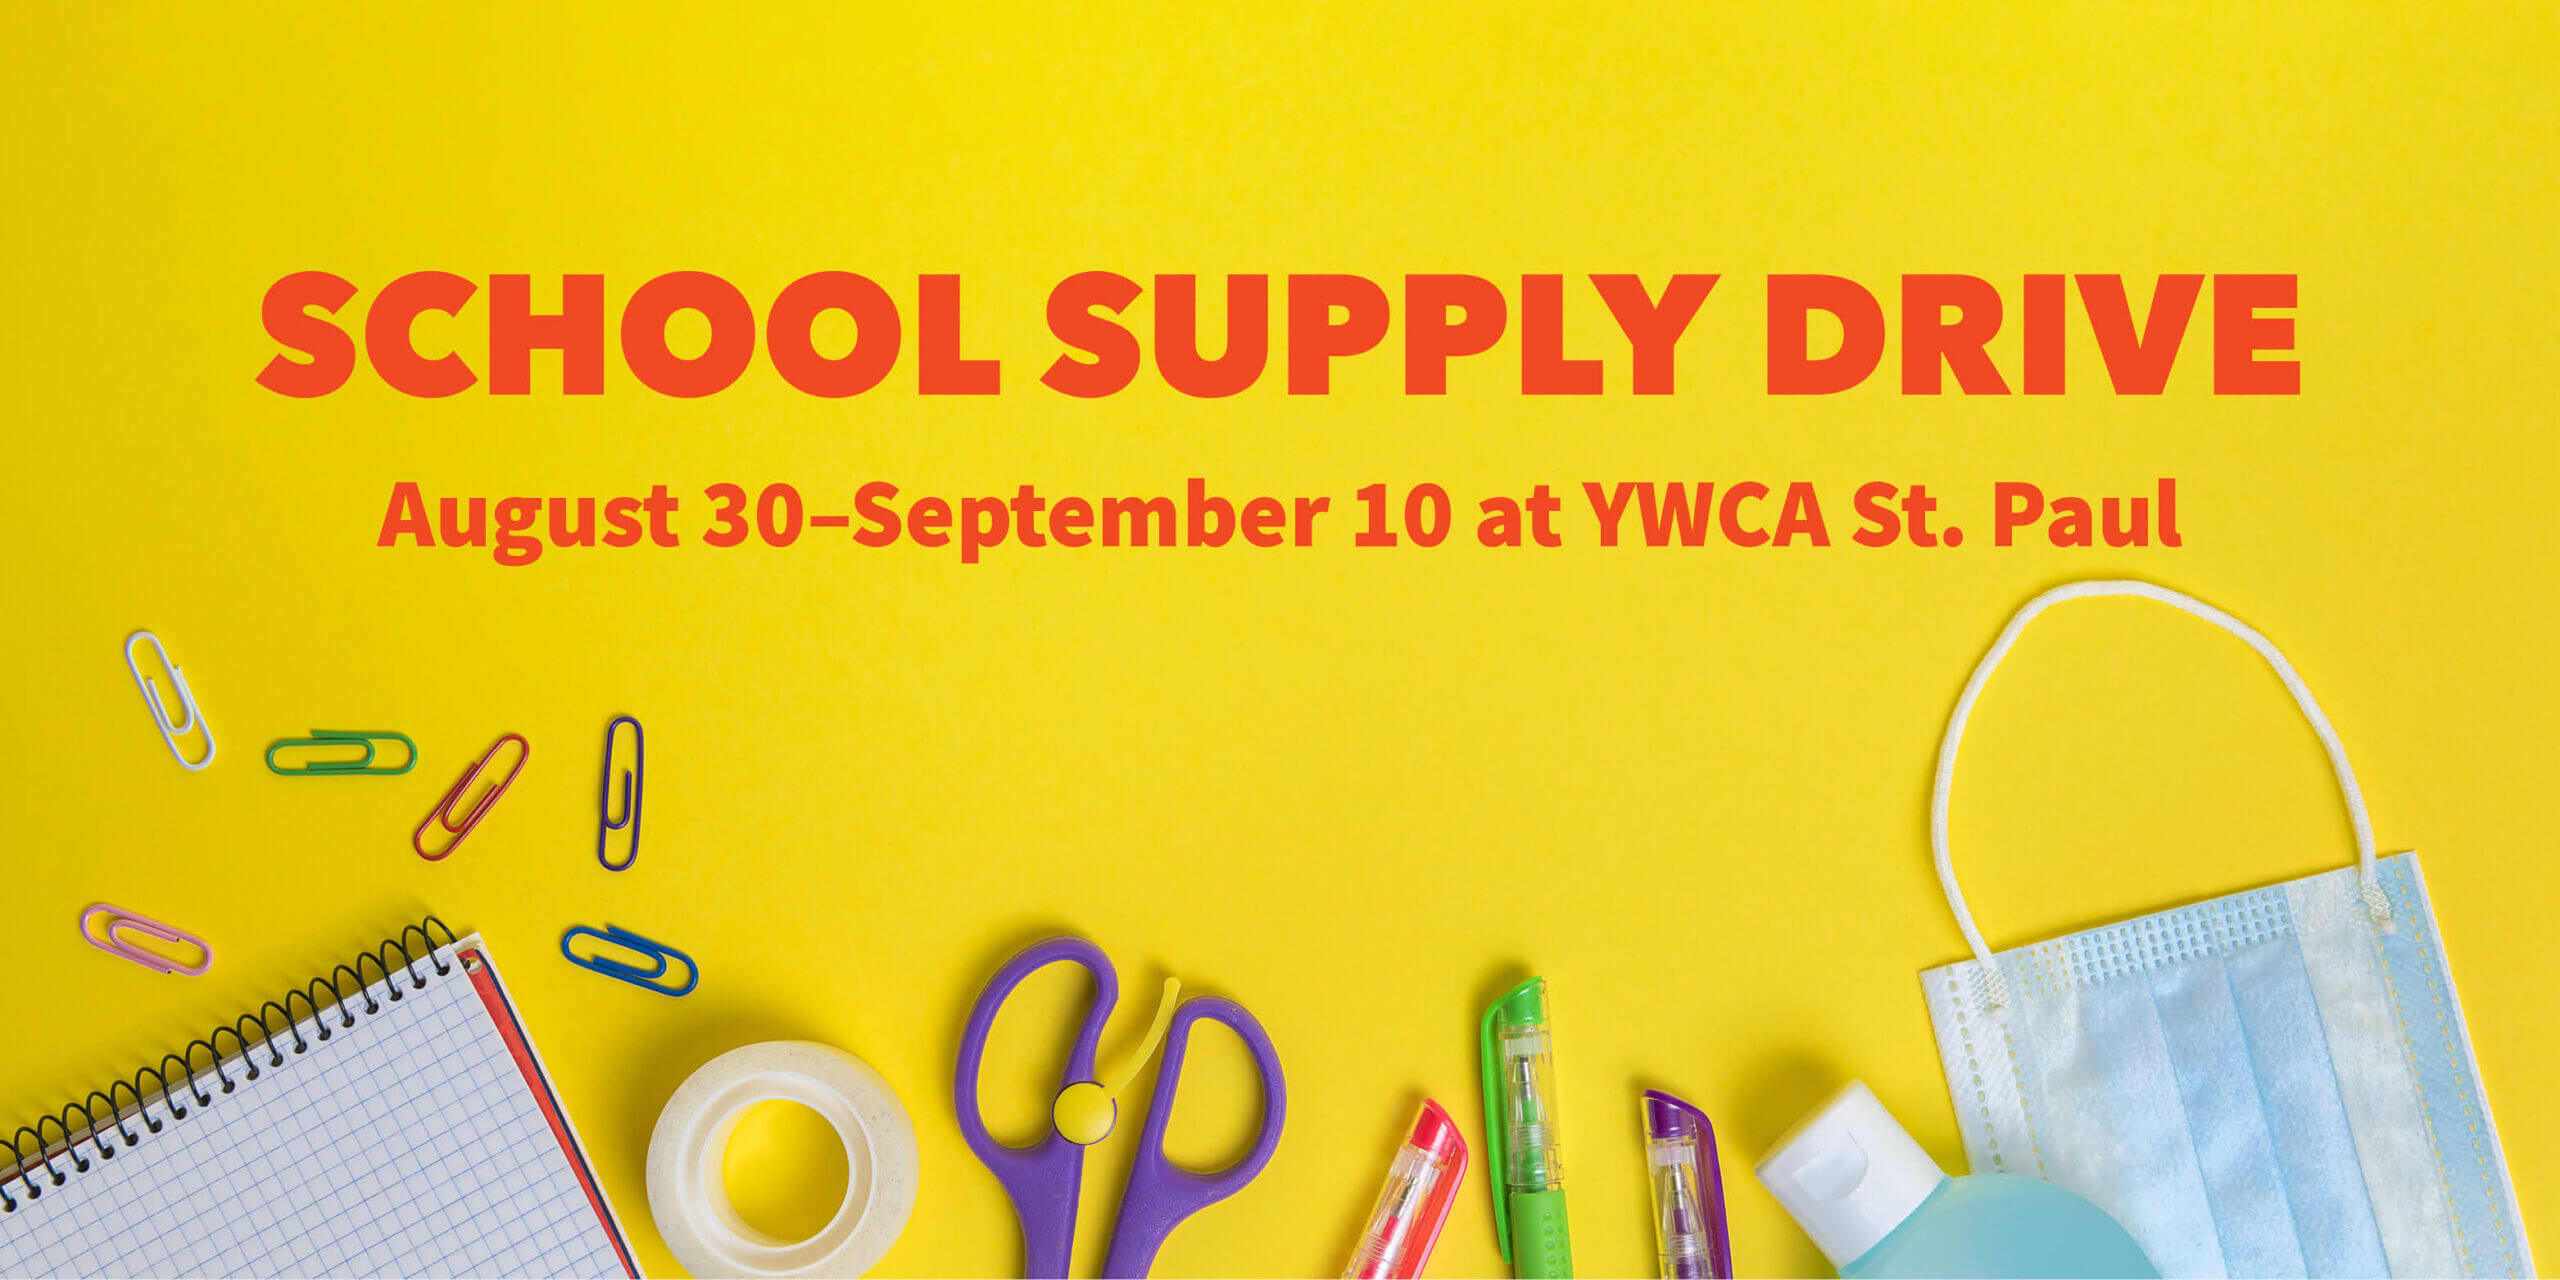 """""""School Supply Drive August 30–September 10 at YWCA St. Paul"""" in bold text on a bright yellow background. Along the bottom of the image is a flatlay of colorful school supplies."""